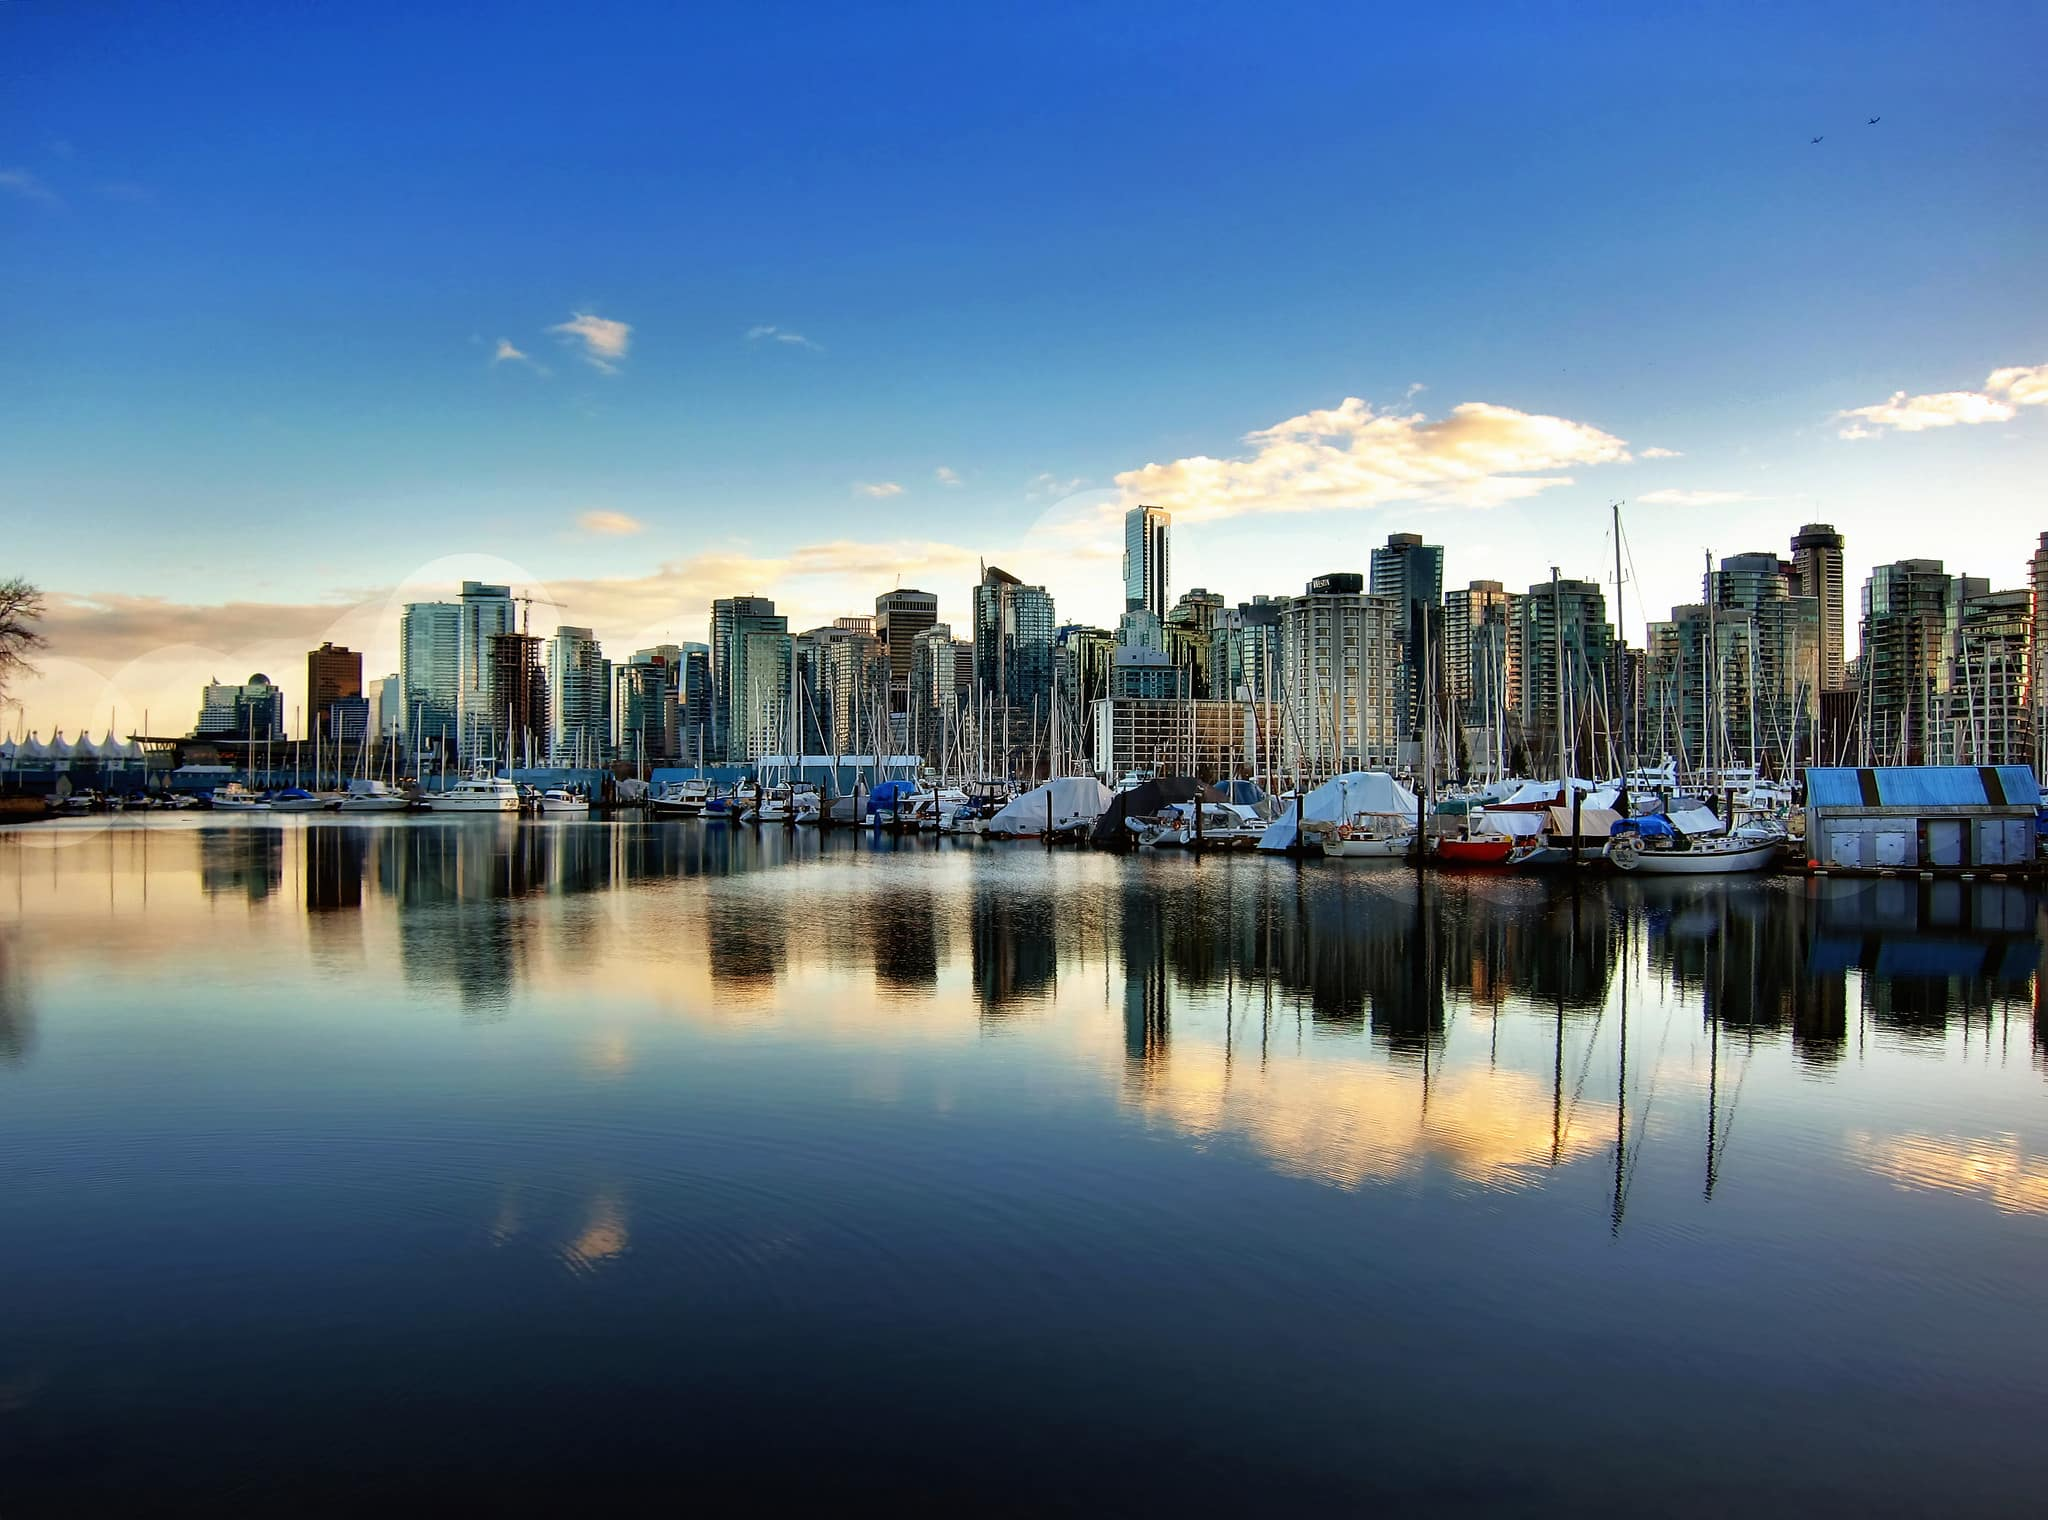 Where to go on holiday - Vancouver, Canada | pic: Nick Kenrick